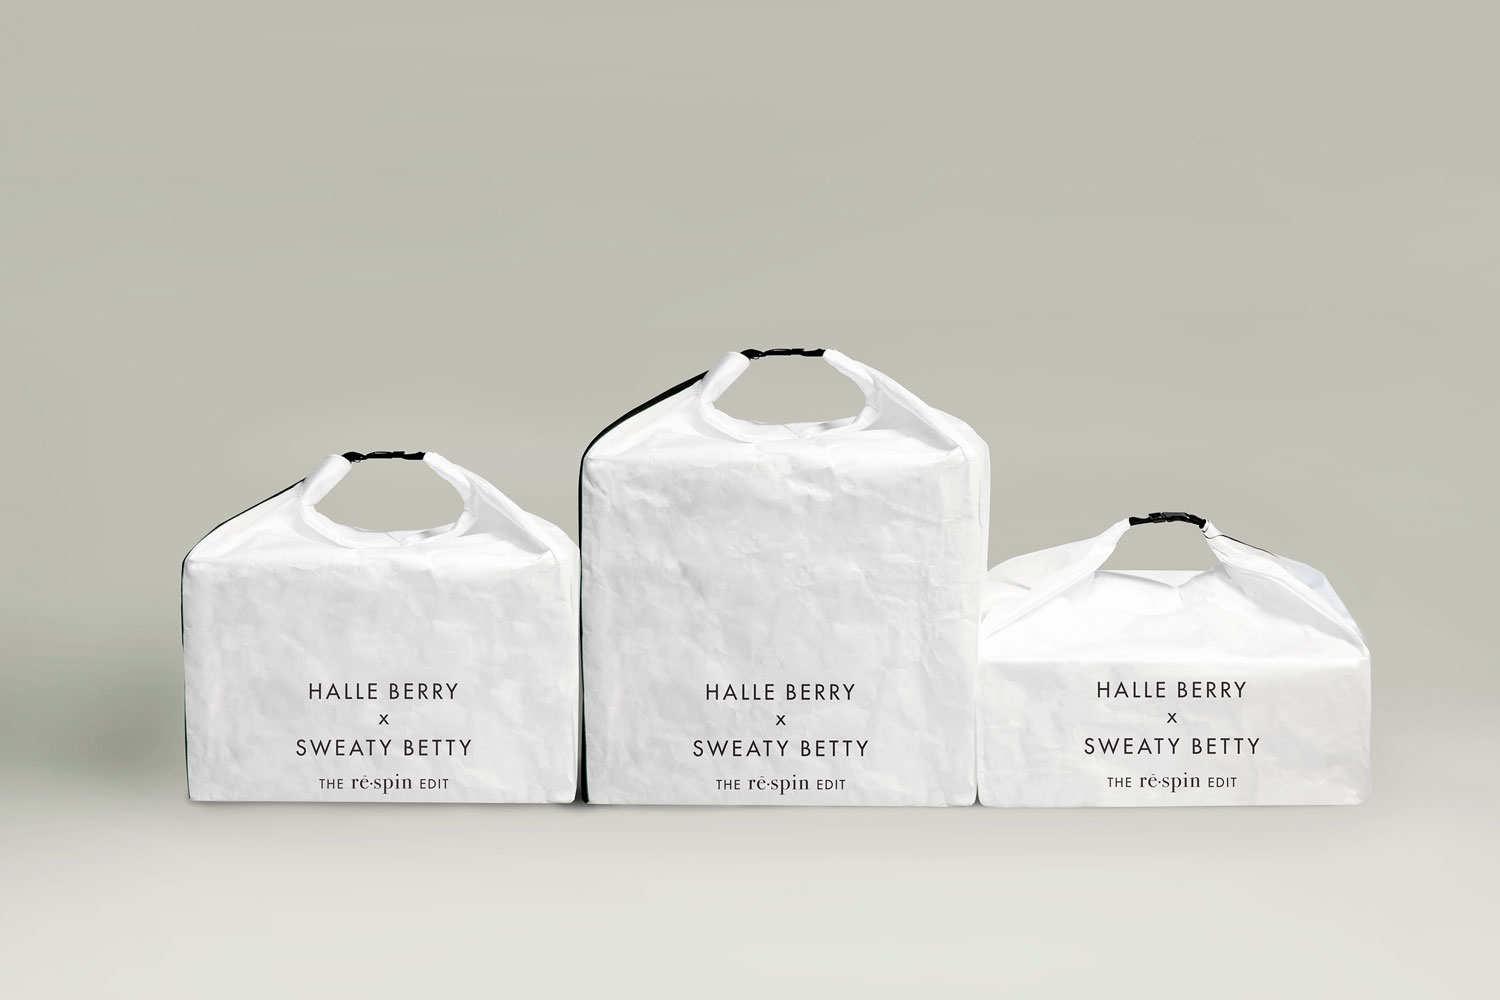 Vip Gifting Packaging Production Manufacture Halle Berry Sweaty Betty Handmade Launch A List Celebrity Tyvek Colorplan G F Smith Luxury Box Custom Bag Limited Edition Progress 13